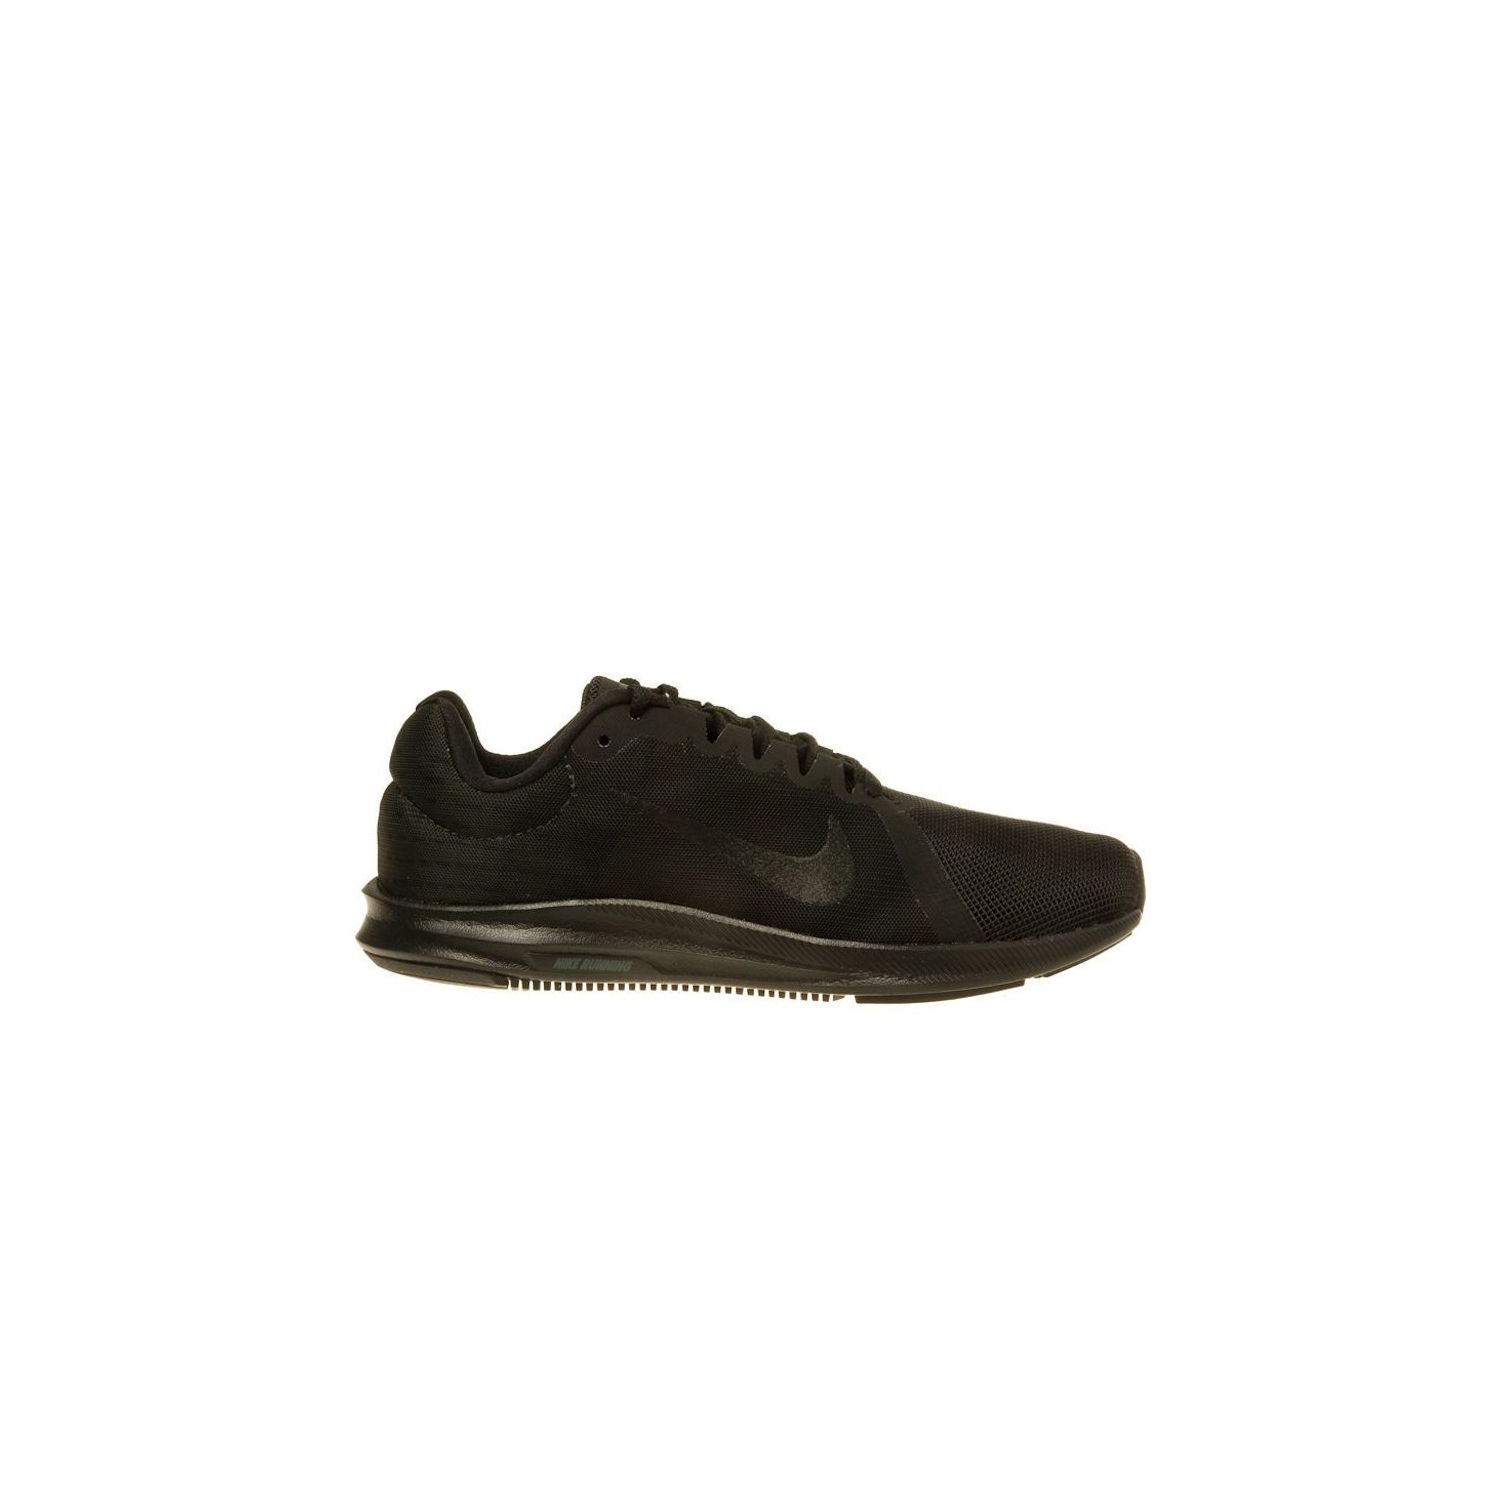 Nike - Downshifter 8 Noir - 40 - pas cher Achat / Vente Chaussures running